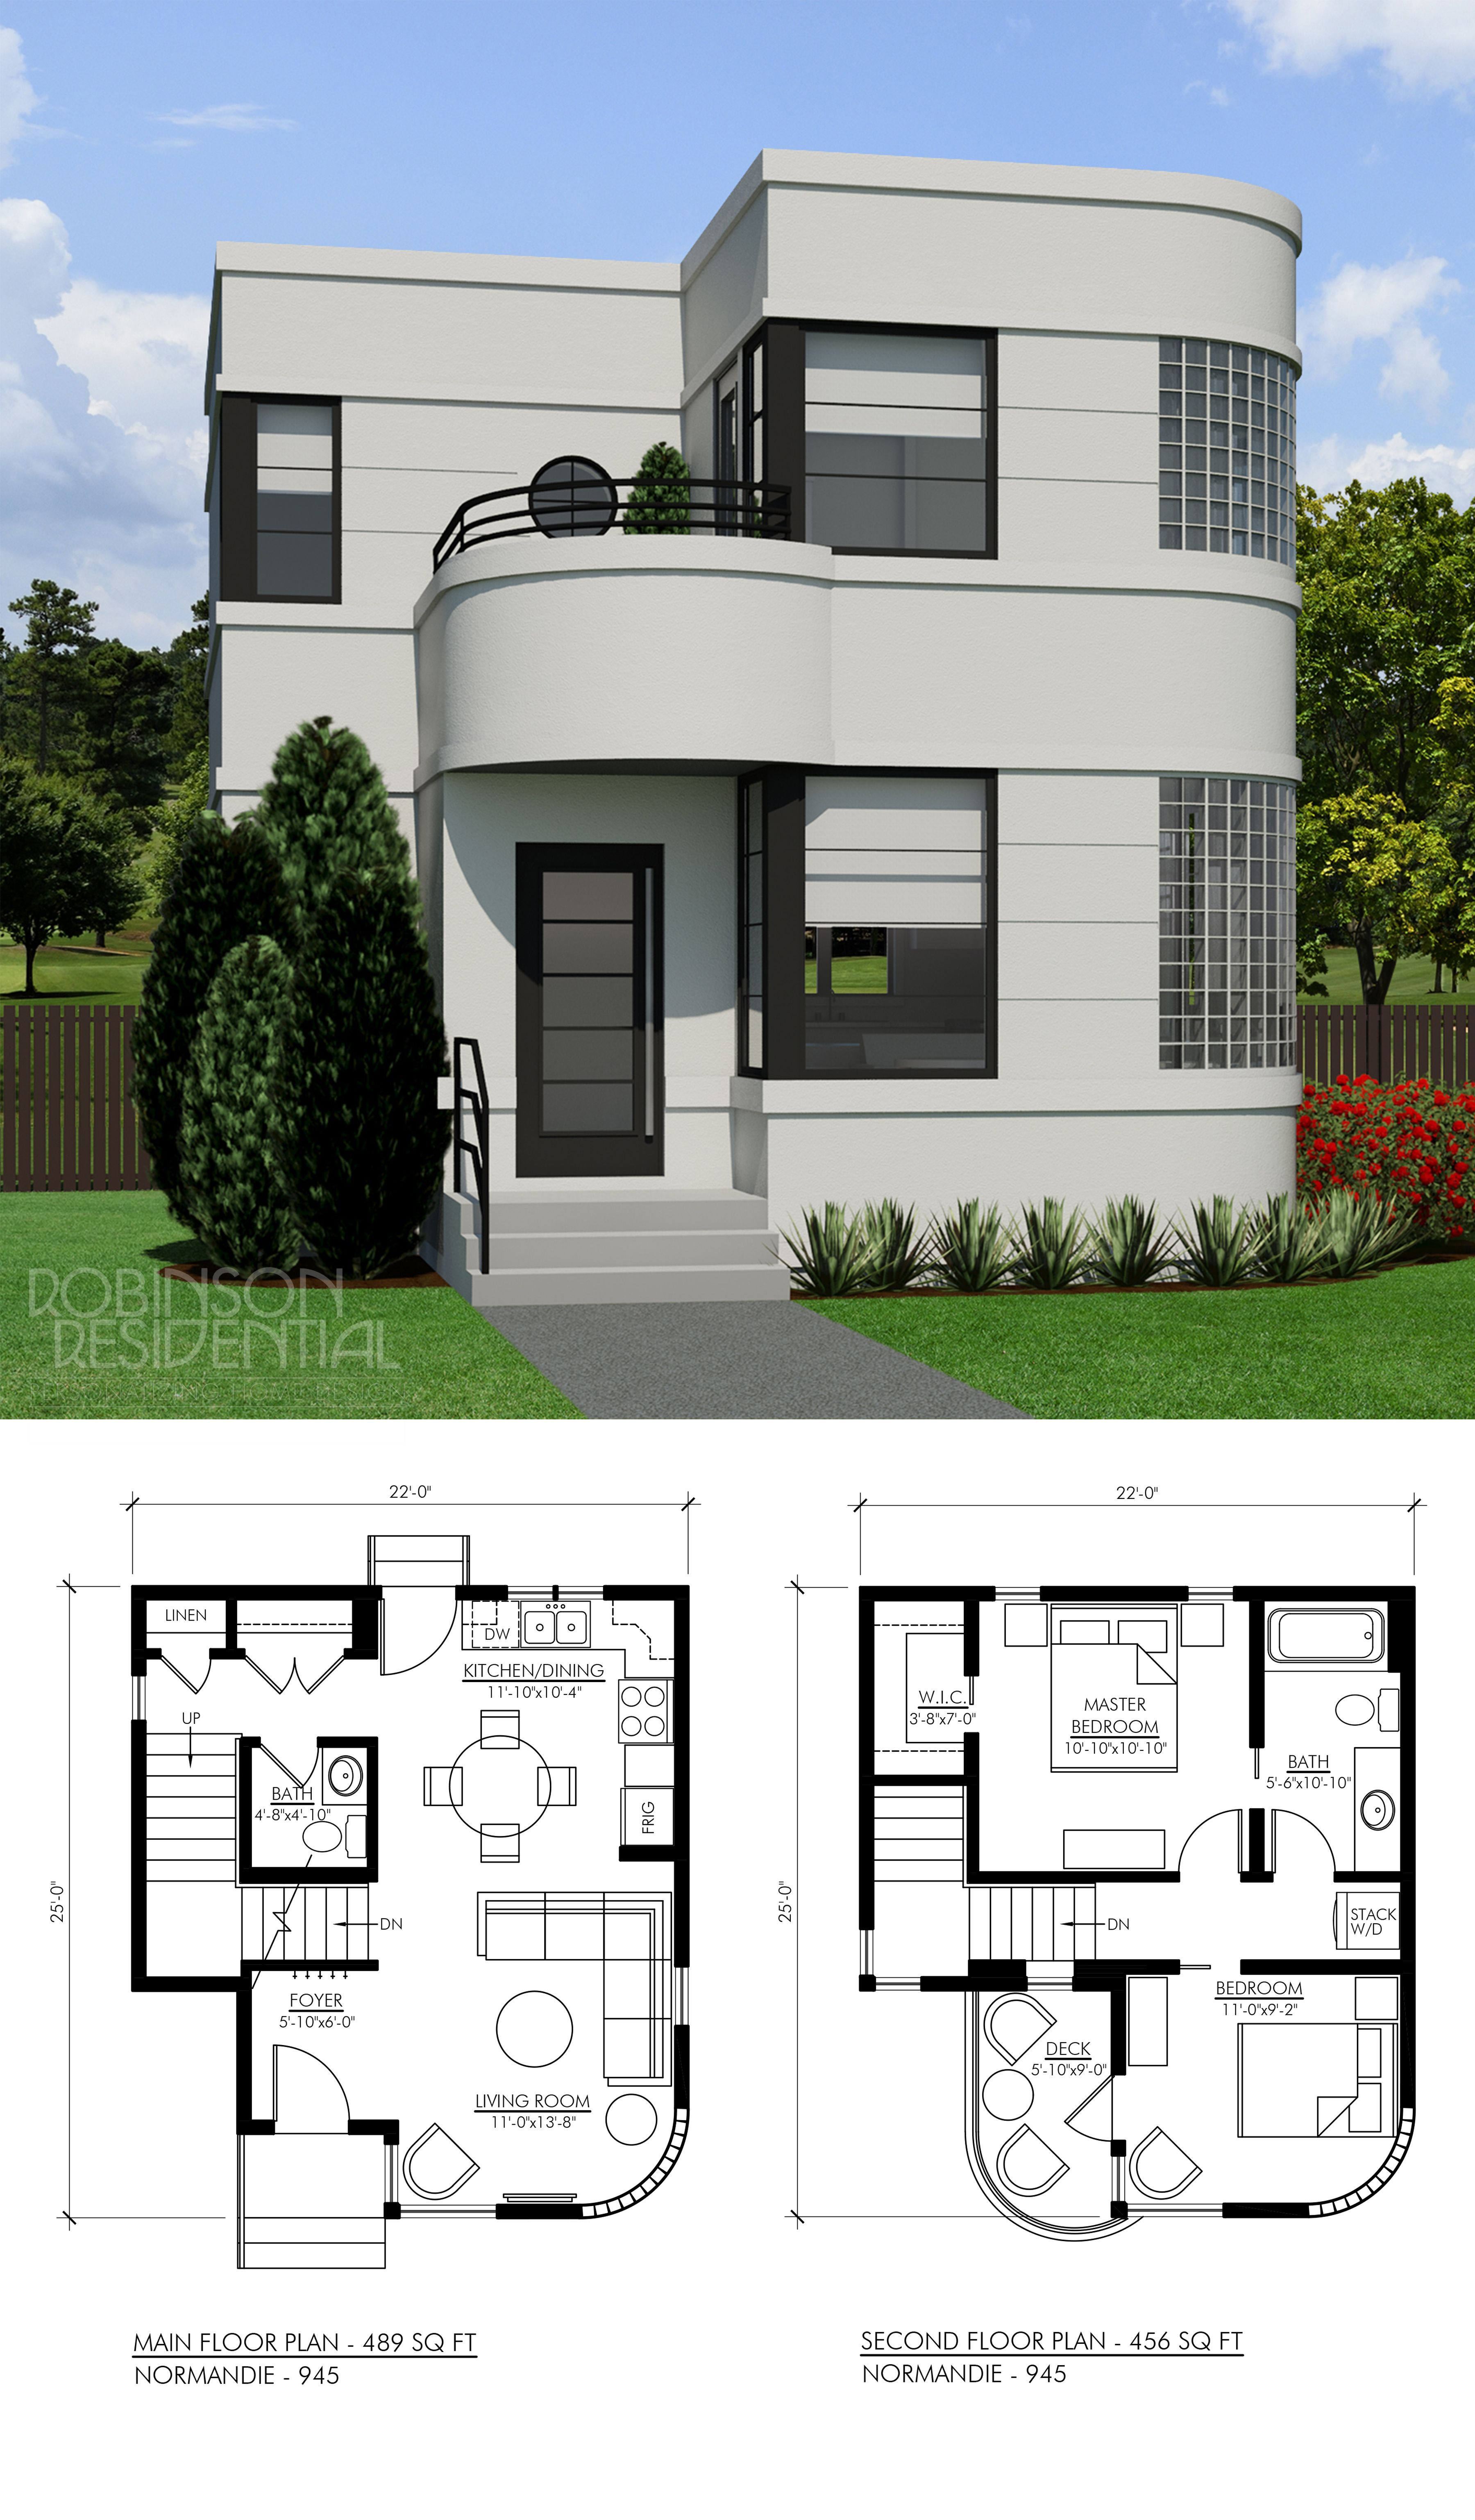 House Design and Plans Inspirational Contemporary norman 945